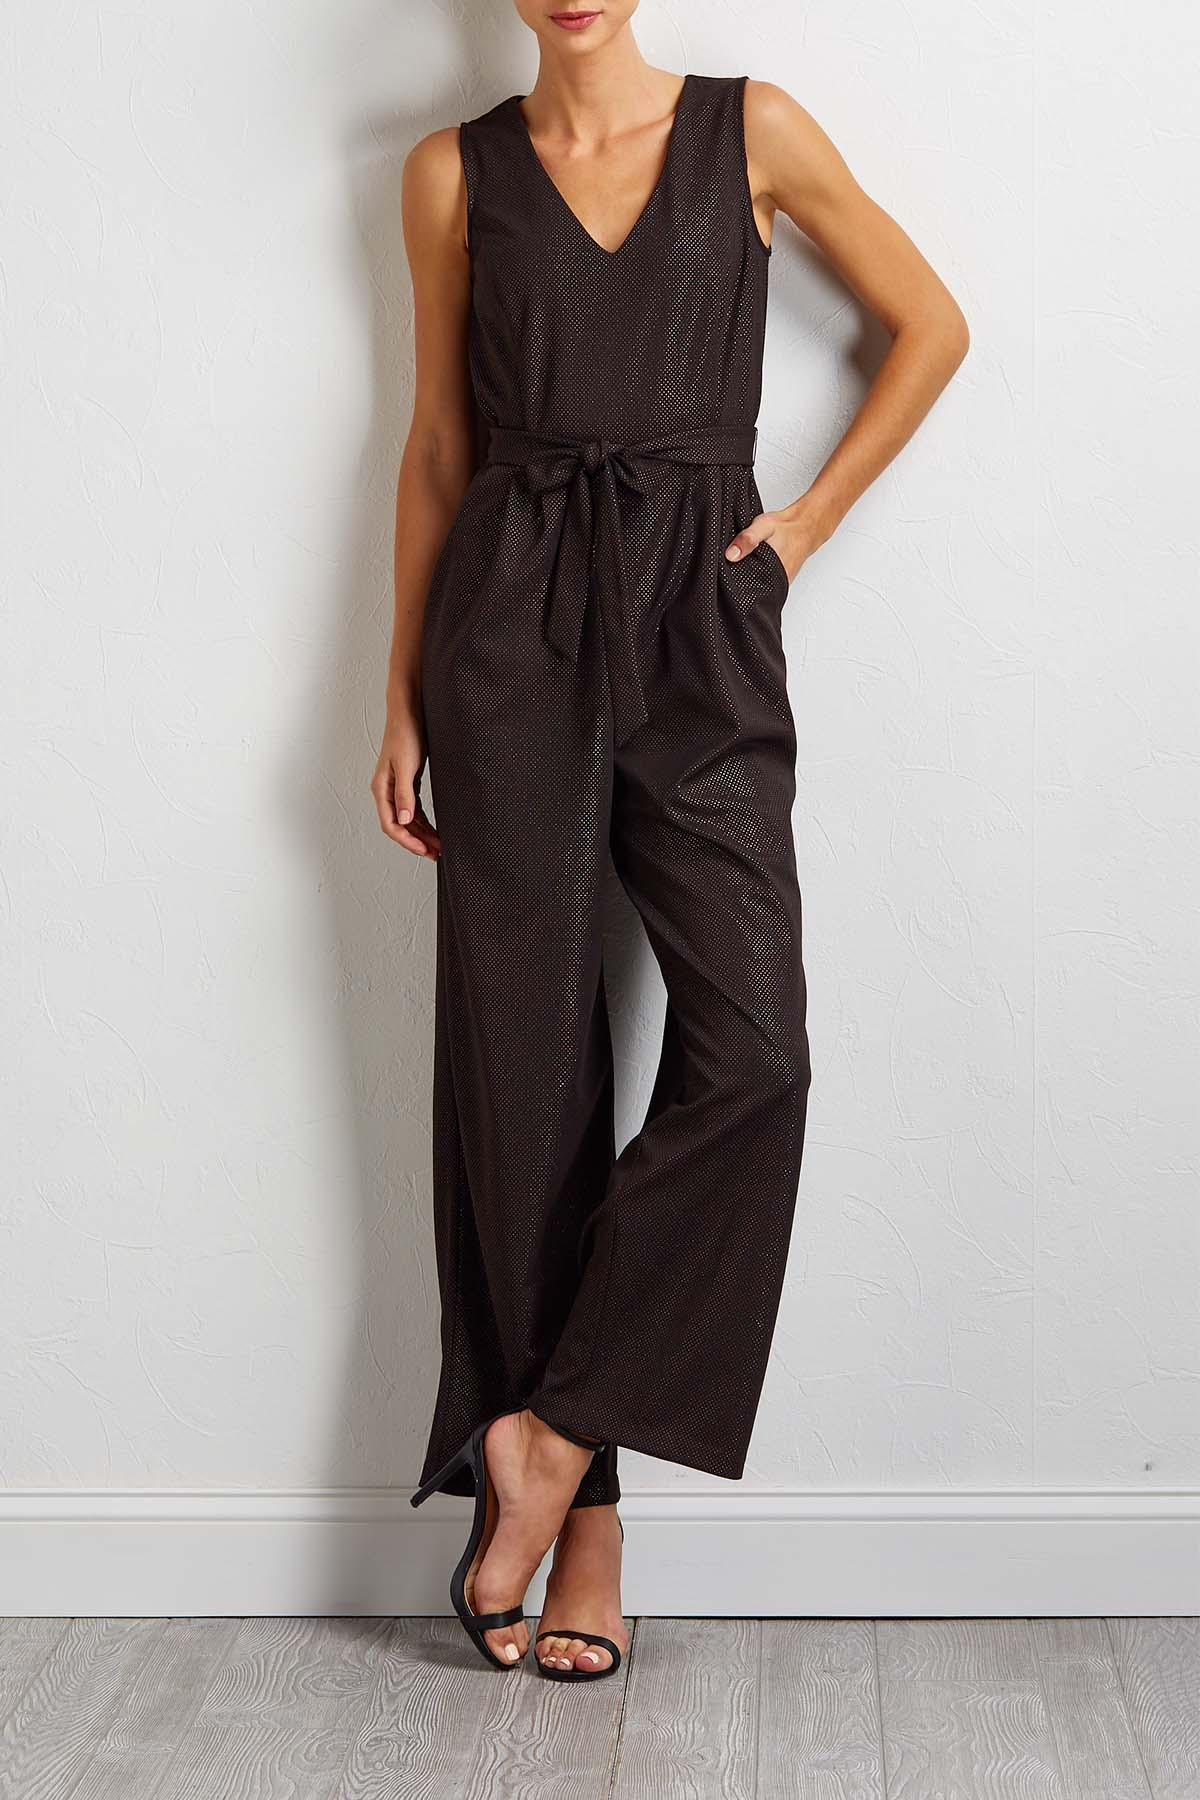 Friday Favorites - Versona Jumpsuit - JK Style